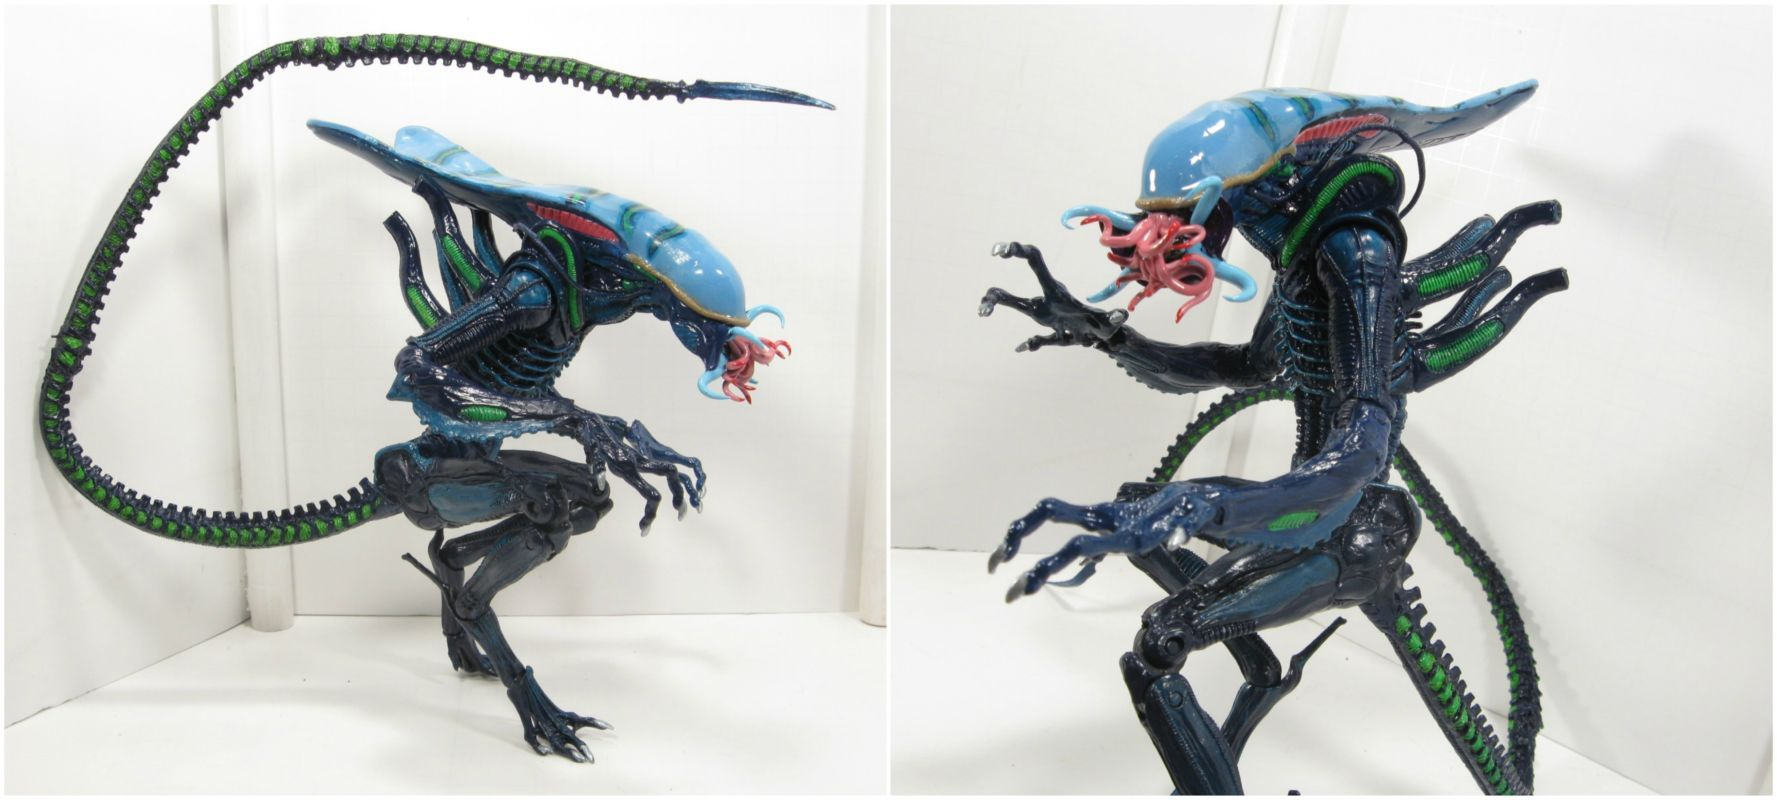 Hound Of Cthulhu Aliens Custom Action Figure Custom Action Figures Action Figures Alien